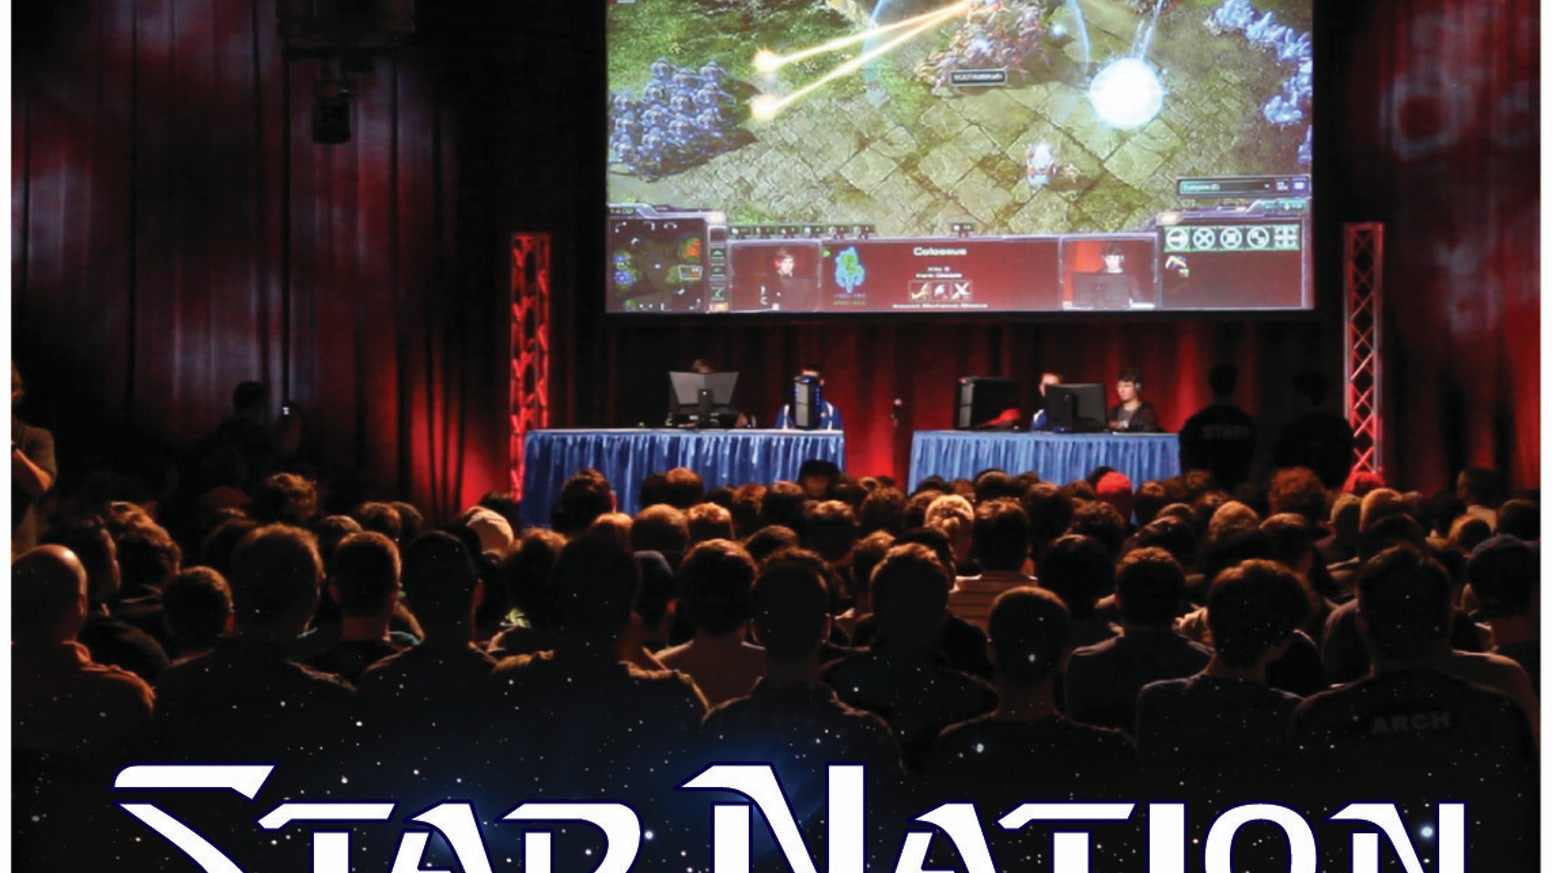 Star Nation: a look at the players behind StarCraft II by